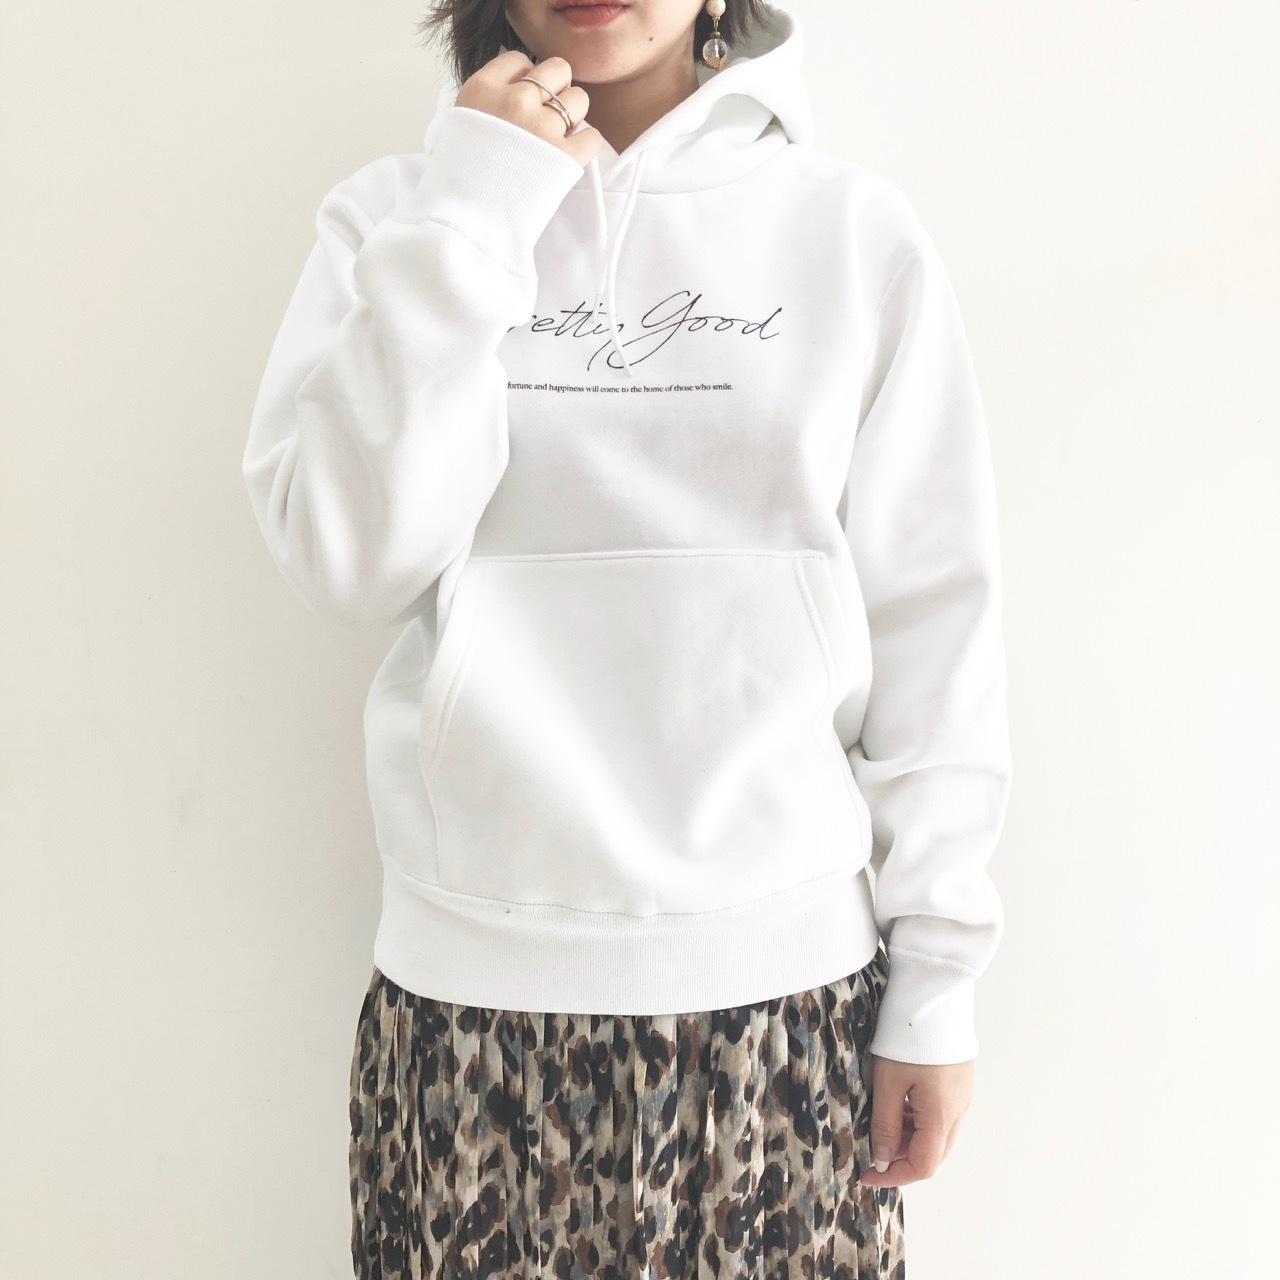 【 for the people 】- 193-010018 - Heavy duty sweetパーカー